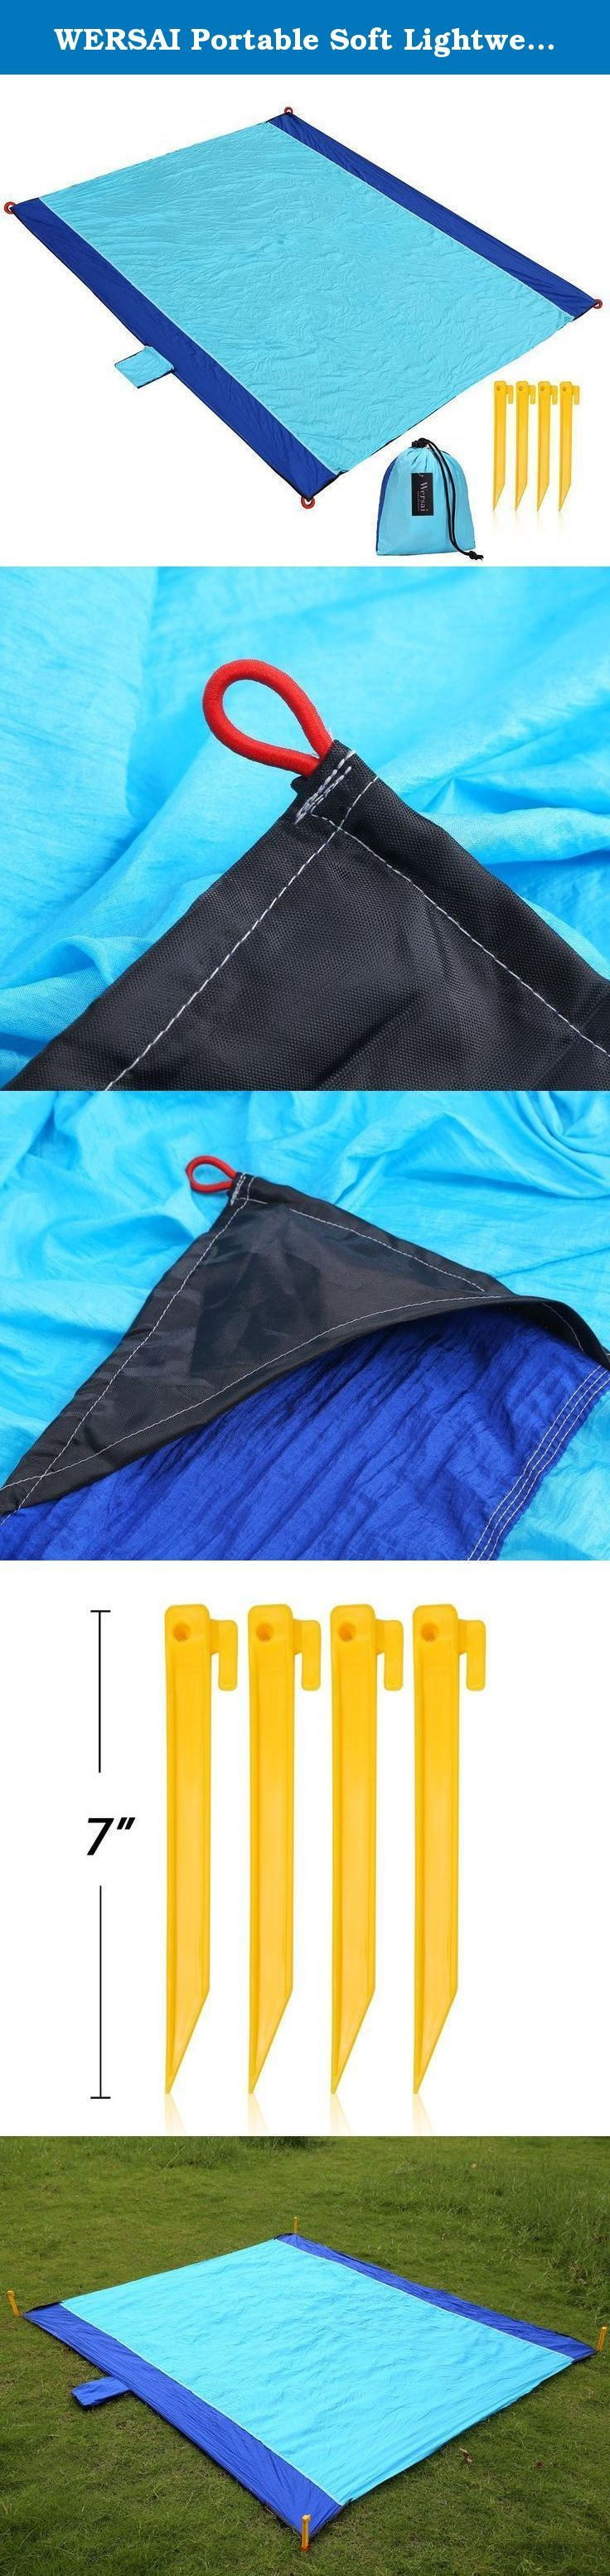 WERSAI Portable Soft Lightweight Beach Blanket Picnic Mat Pad for Travel Outdoor Blue. WERSAI beach blanket, a must-have for your summer. LIGHTWEIGHT, COMPACT AND PORTABLE BEACH BLANKET. WERSAI beach blanket is made of parachute nylon fabric, the advantage of this material is soft, lightweight, dry quick and easy cleaning. Imagine lying on the beach with your children, feeling cozy and cool, how wonderful! And you can fold it into a small size, saving space and convenient for carrying. A...